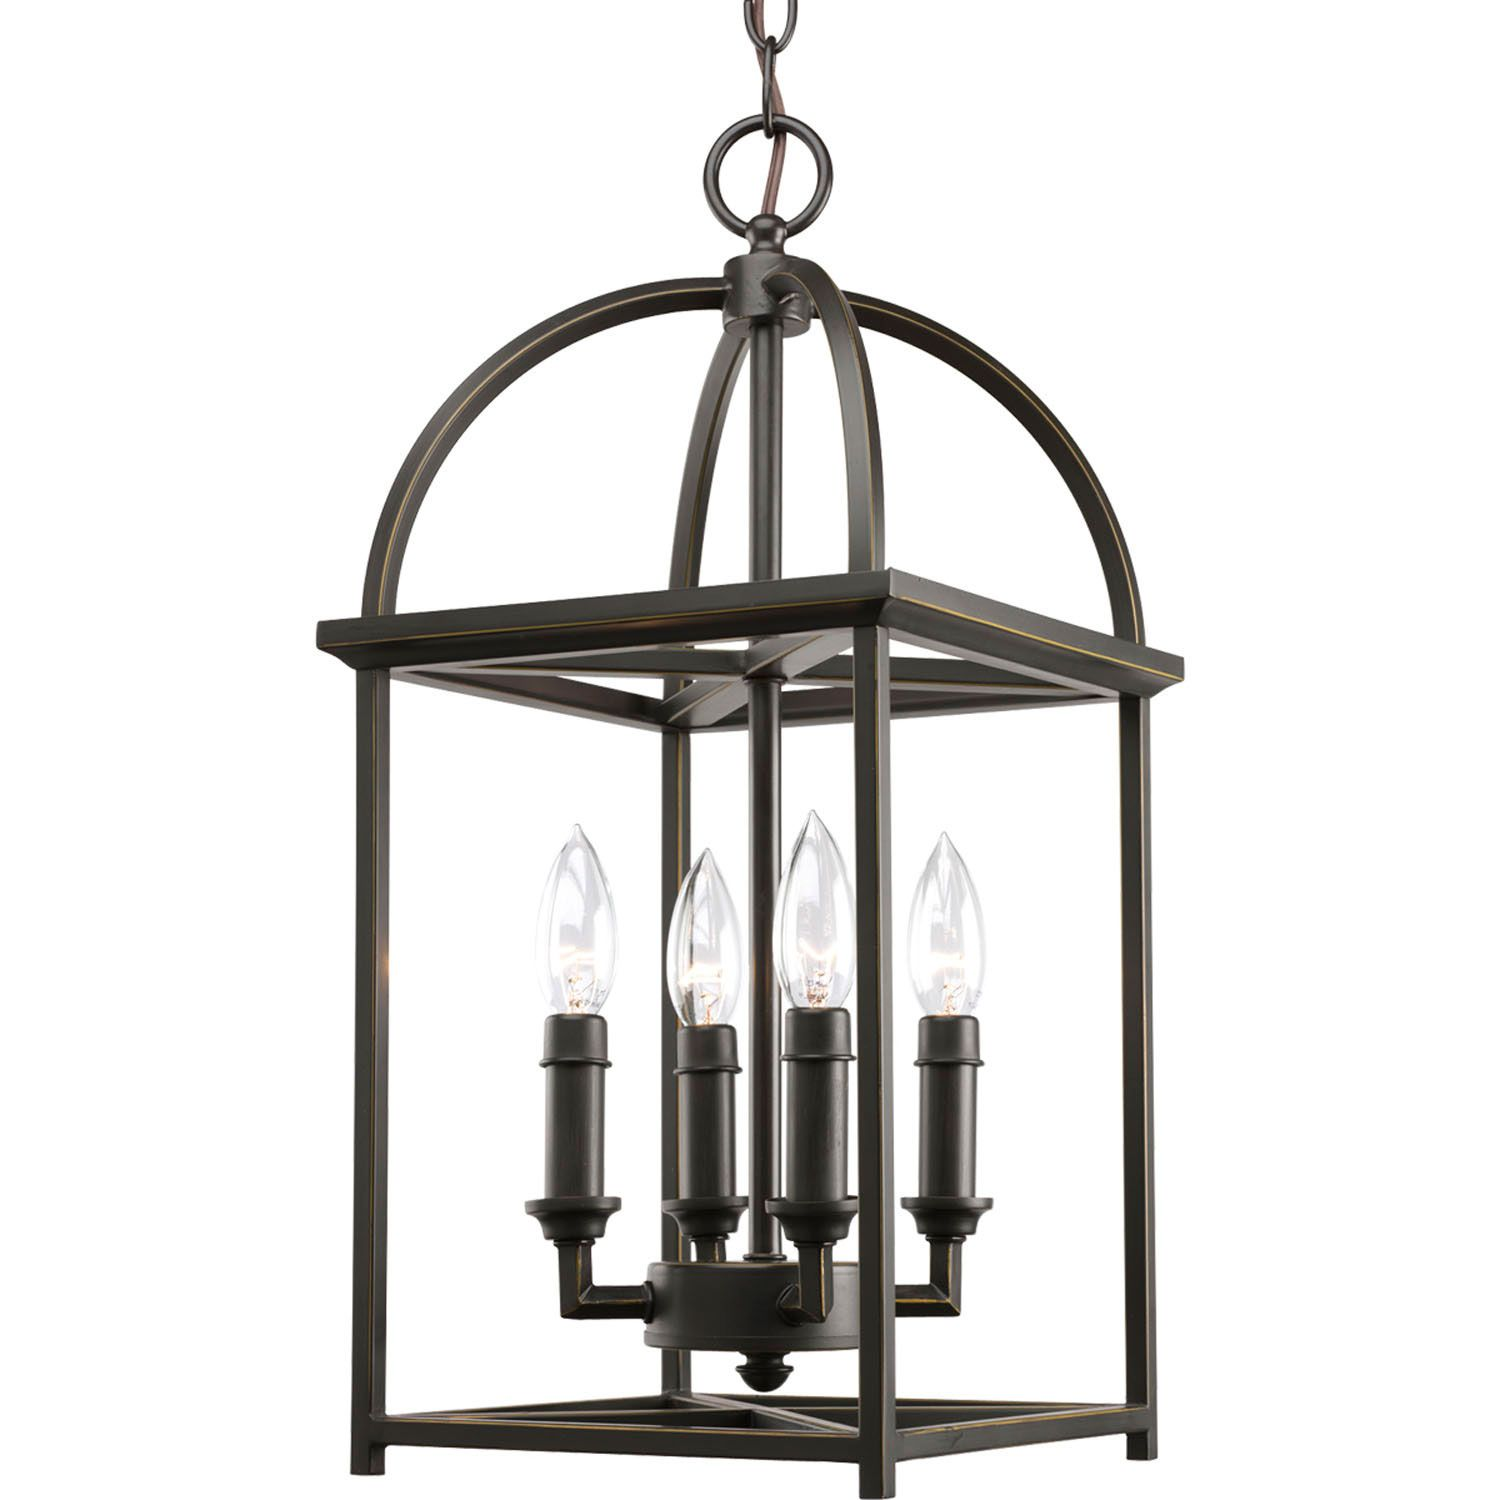 Home Lighting and Light Fixtures offered by Crescent Lighting Showroom.  sc 1 st  Pinterest & Home Lighting and Light Fixtures offered by Crescent Lighting ... azcodes.com